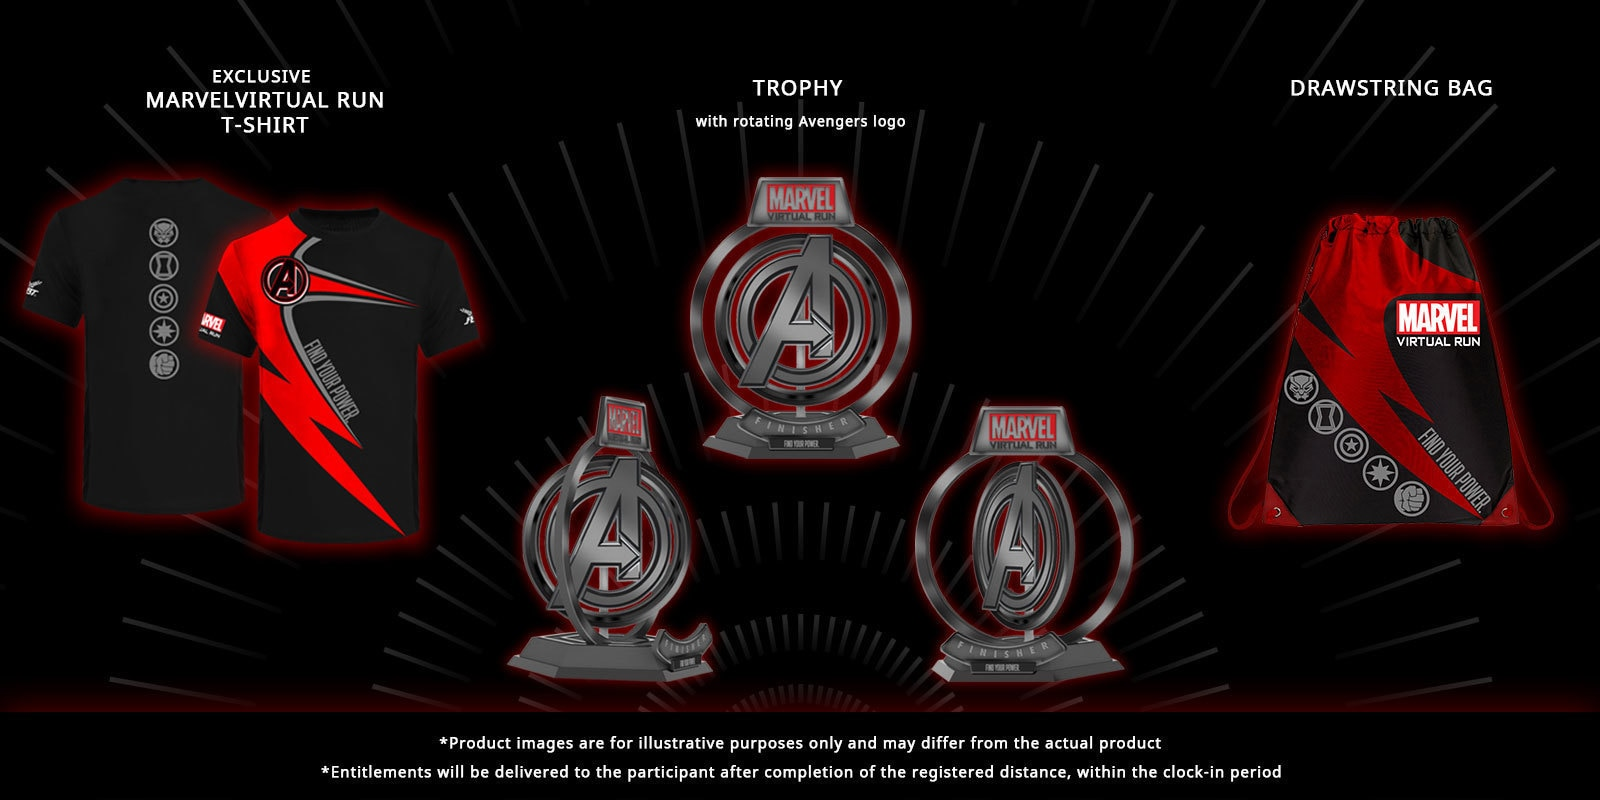 race entitilements including a drawstring bag, t-shirt and trophy